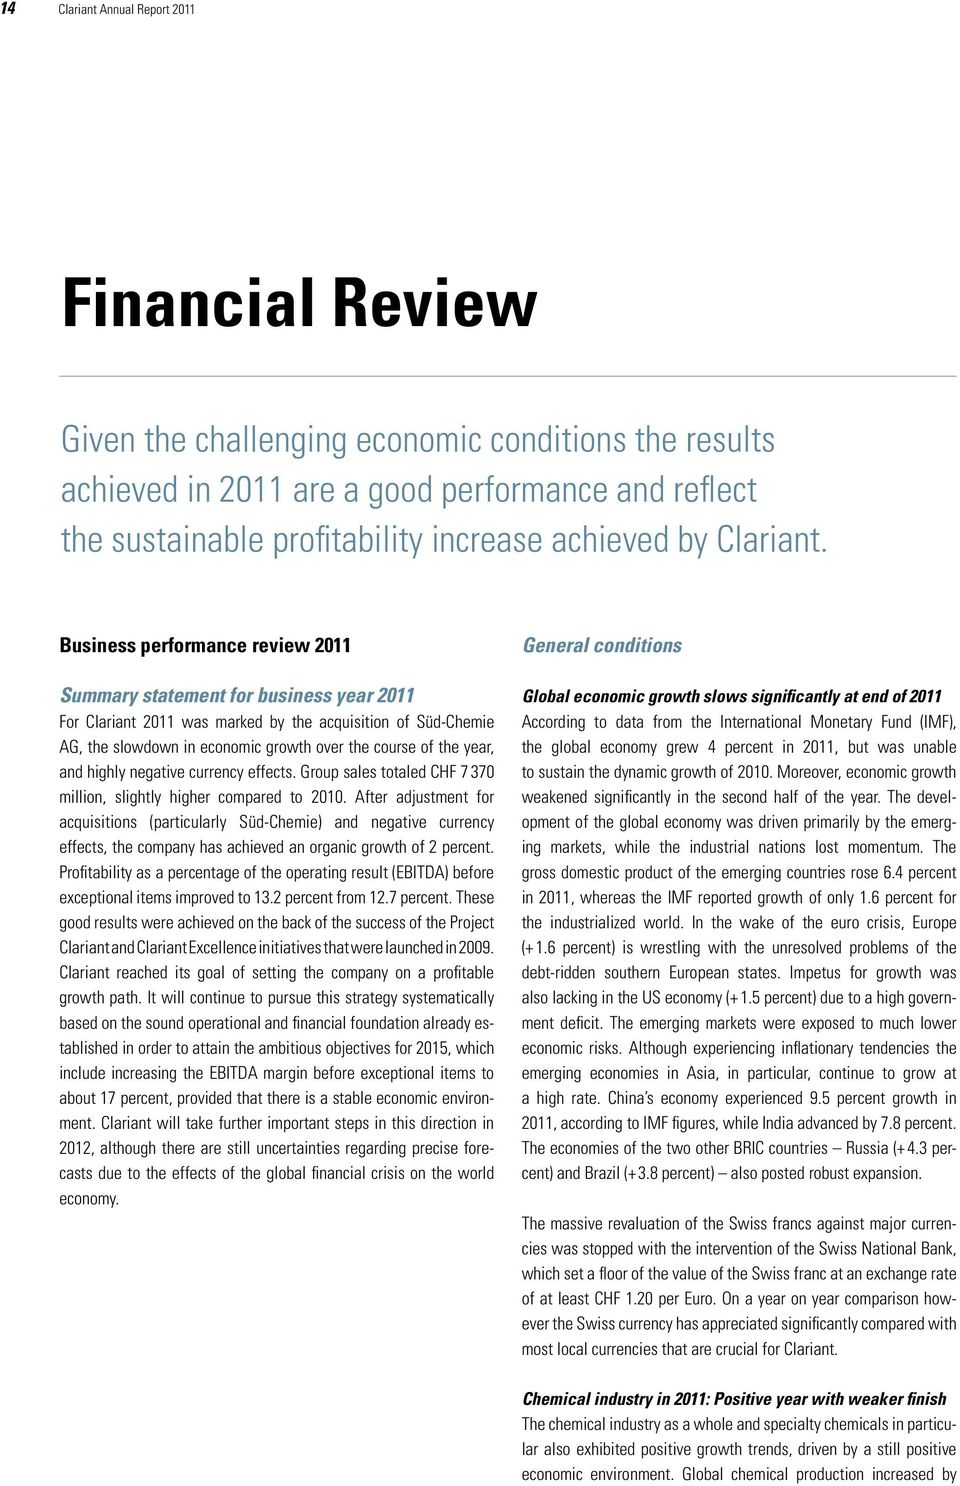 Business performance review 2011 Summary statement for business year 2011 For Clariant 2011 was marked by the acquisition of Süd-Chemie AG, the slowdown in economic growth over the course of the